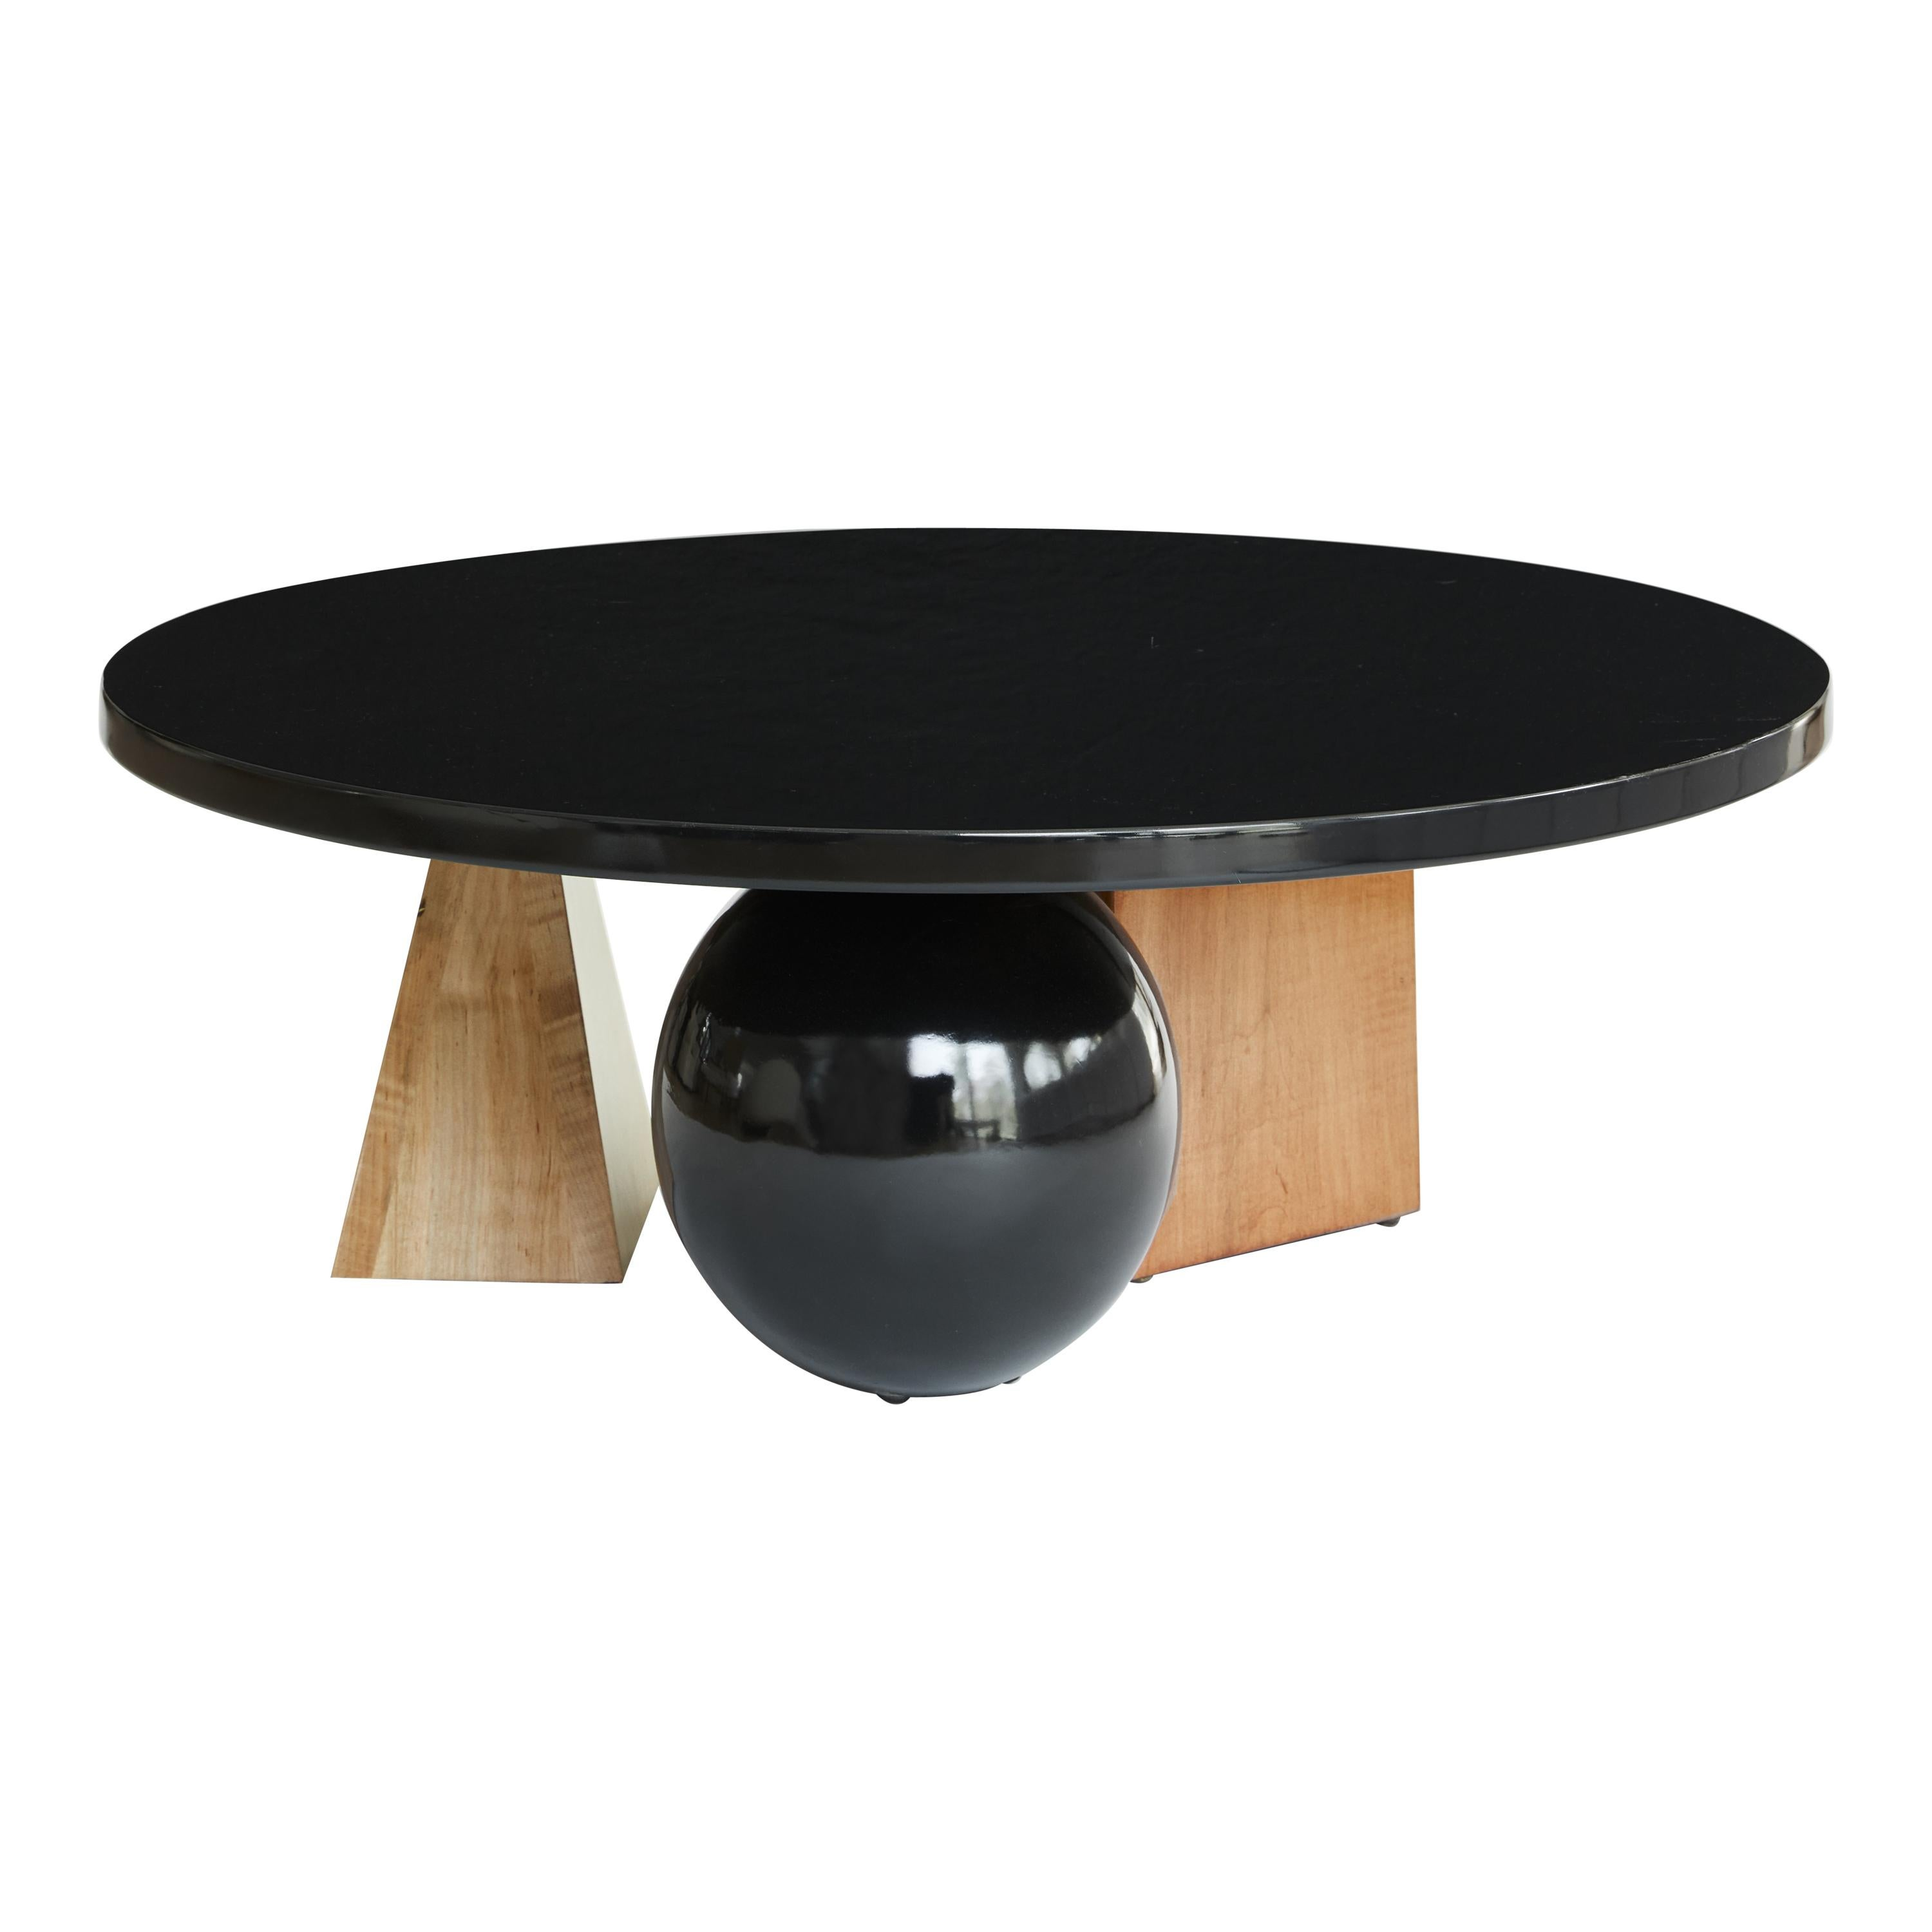 Lincoln Coffee Table, Low Coffee Table by Christian Siriano